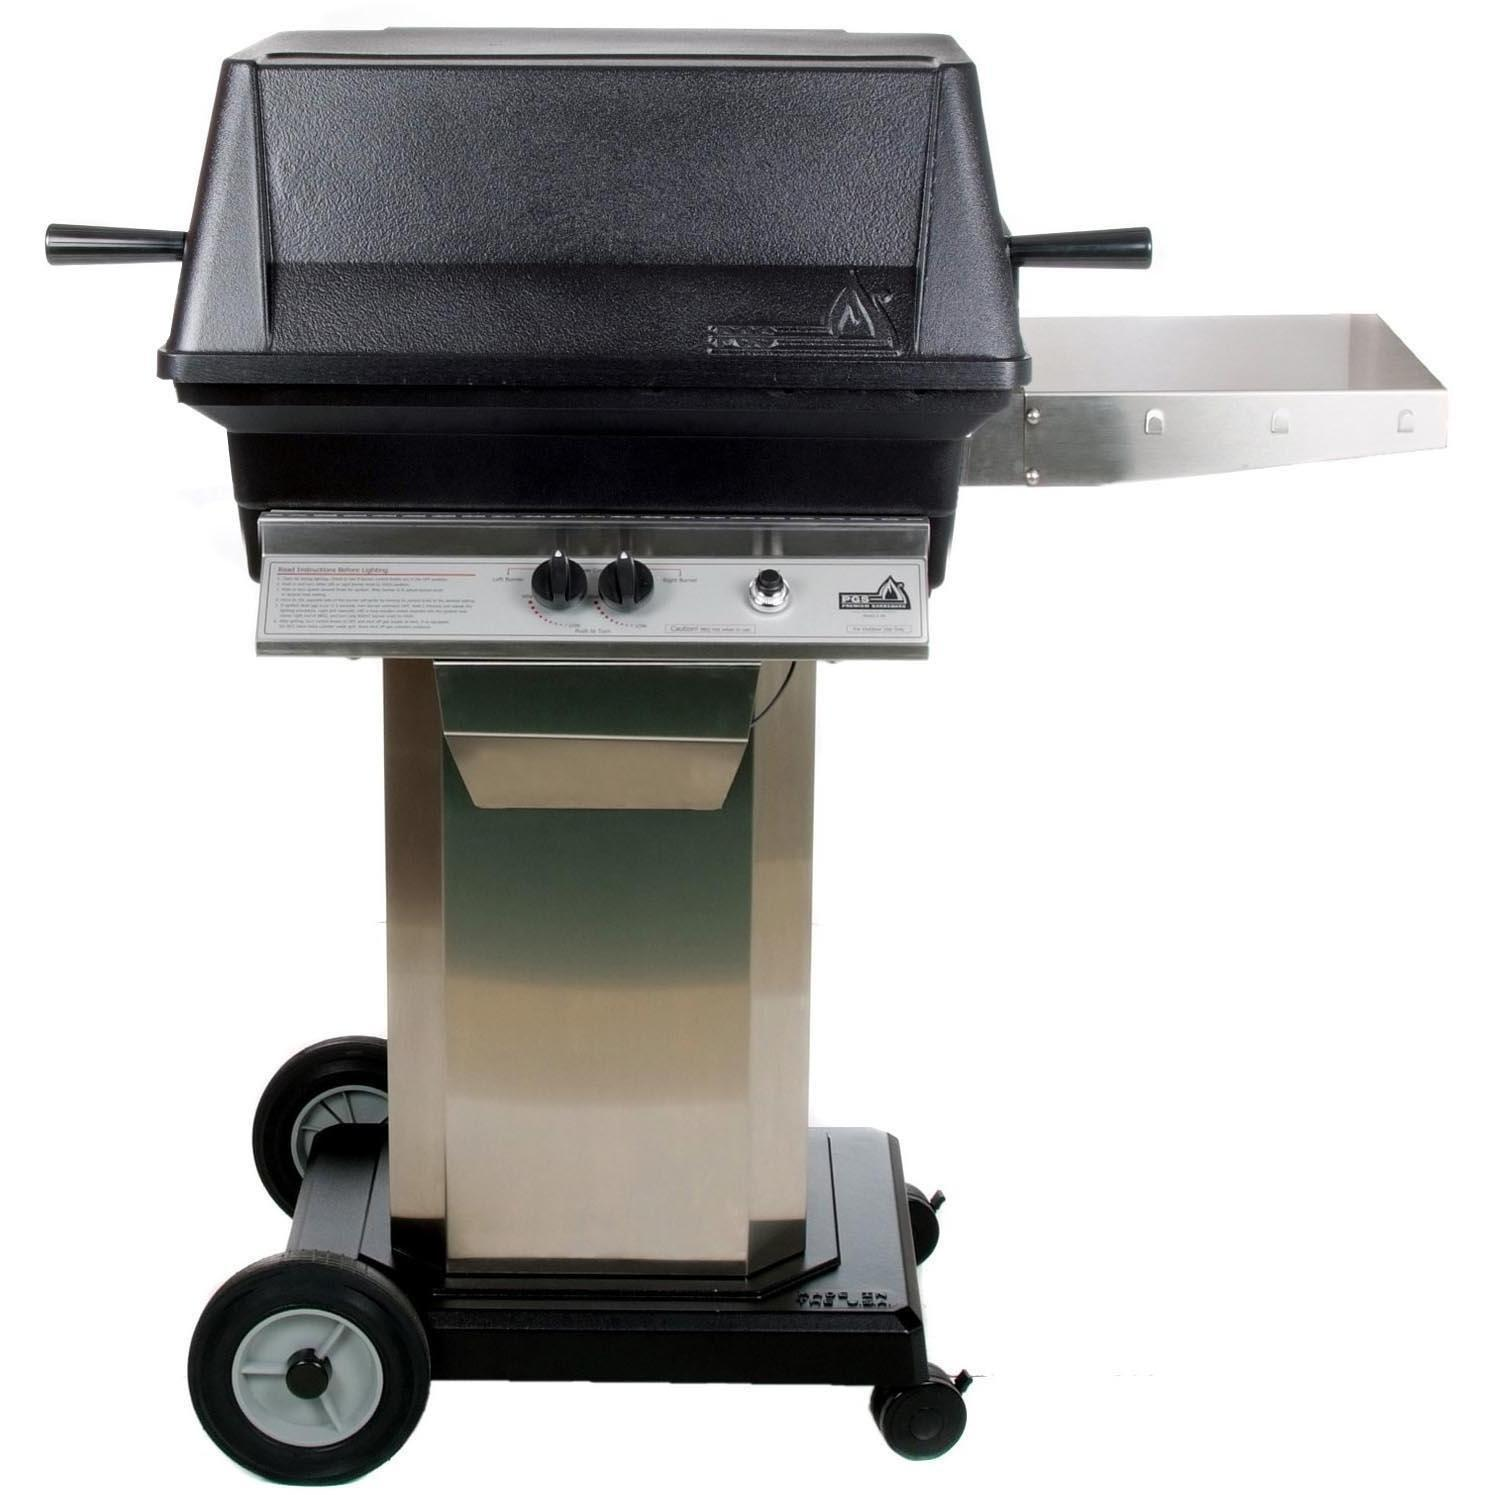 Pgs A30 Cast Aluminum Propane Gas Grill On Stainless Steel